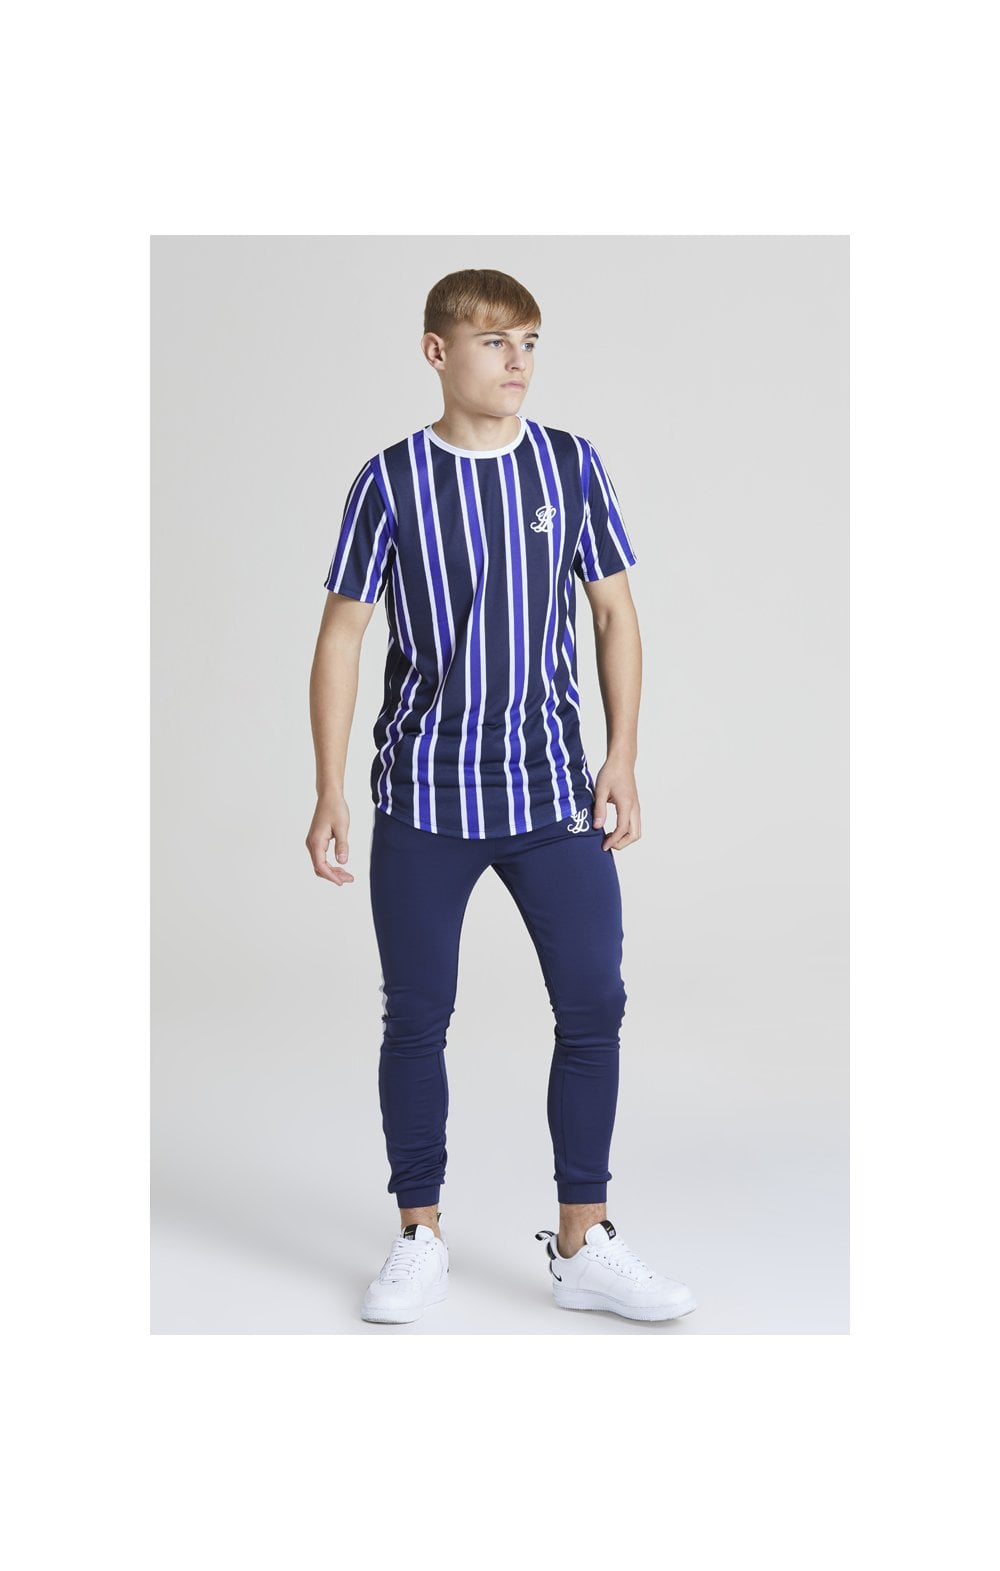 Load image into Gallery viewer, Illusive London Stripe tee - Navy, Purple & White (3)